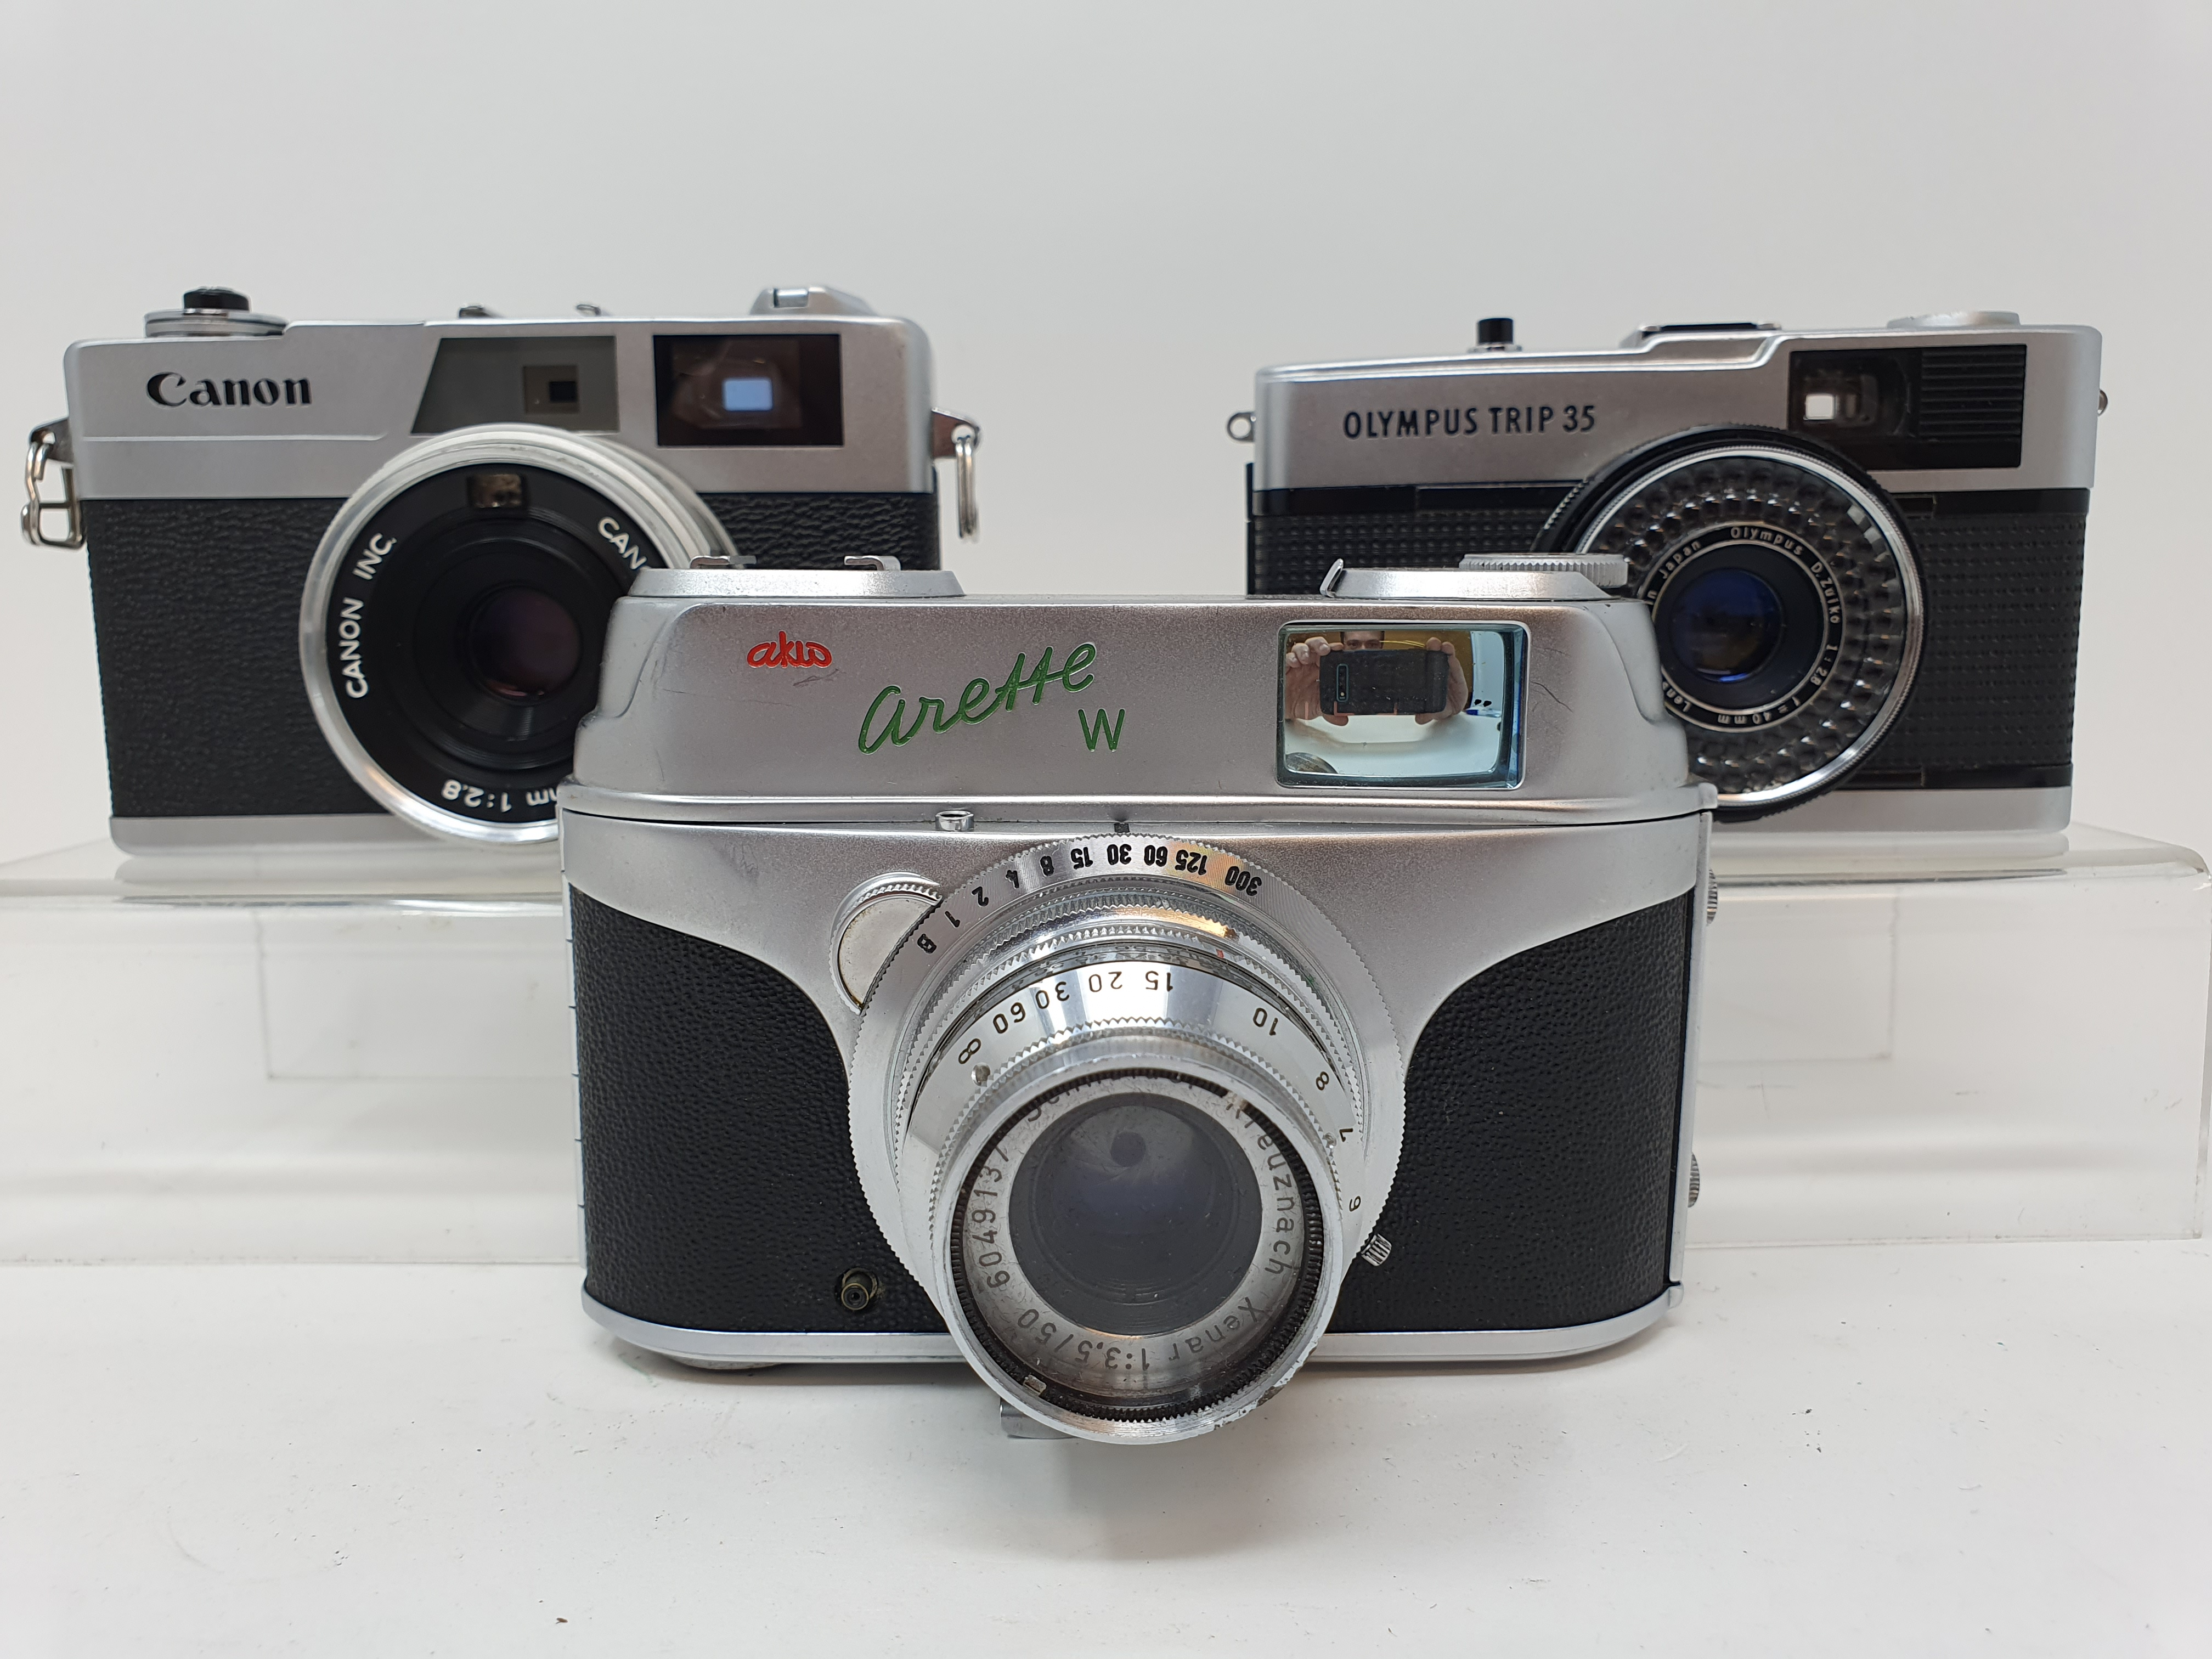 An Arette W camera, an Olympus Trip 35 camera and a Canon Canonet 28 camera (3) Provenance: Part